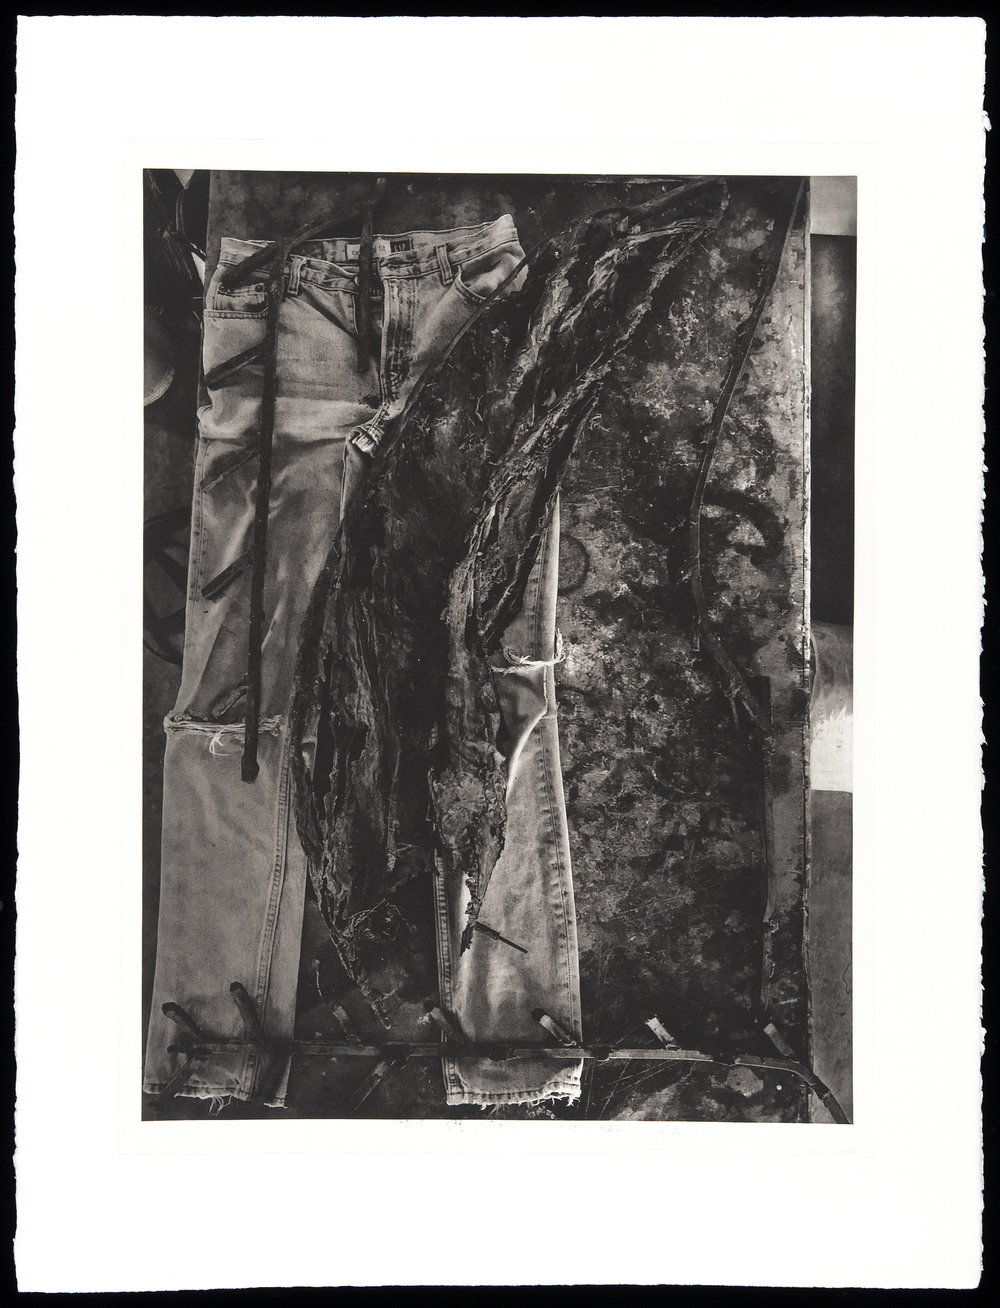 """Broken 1969"", 22"" x 30"", photogravure of sculpture"